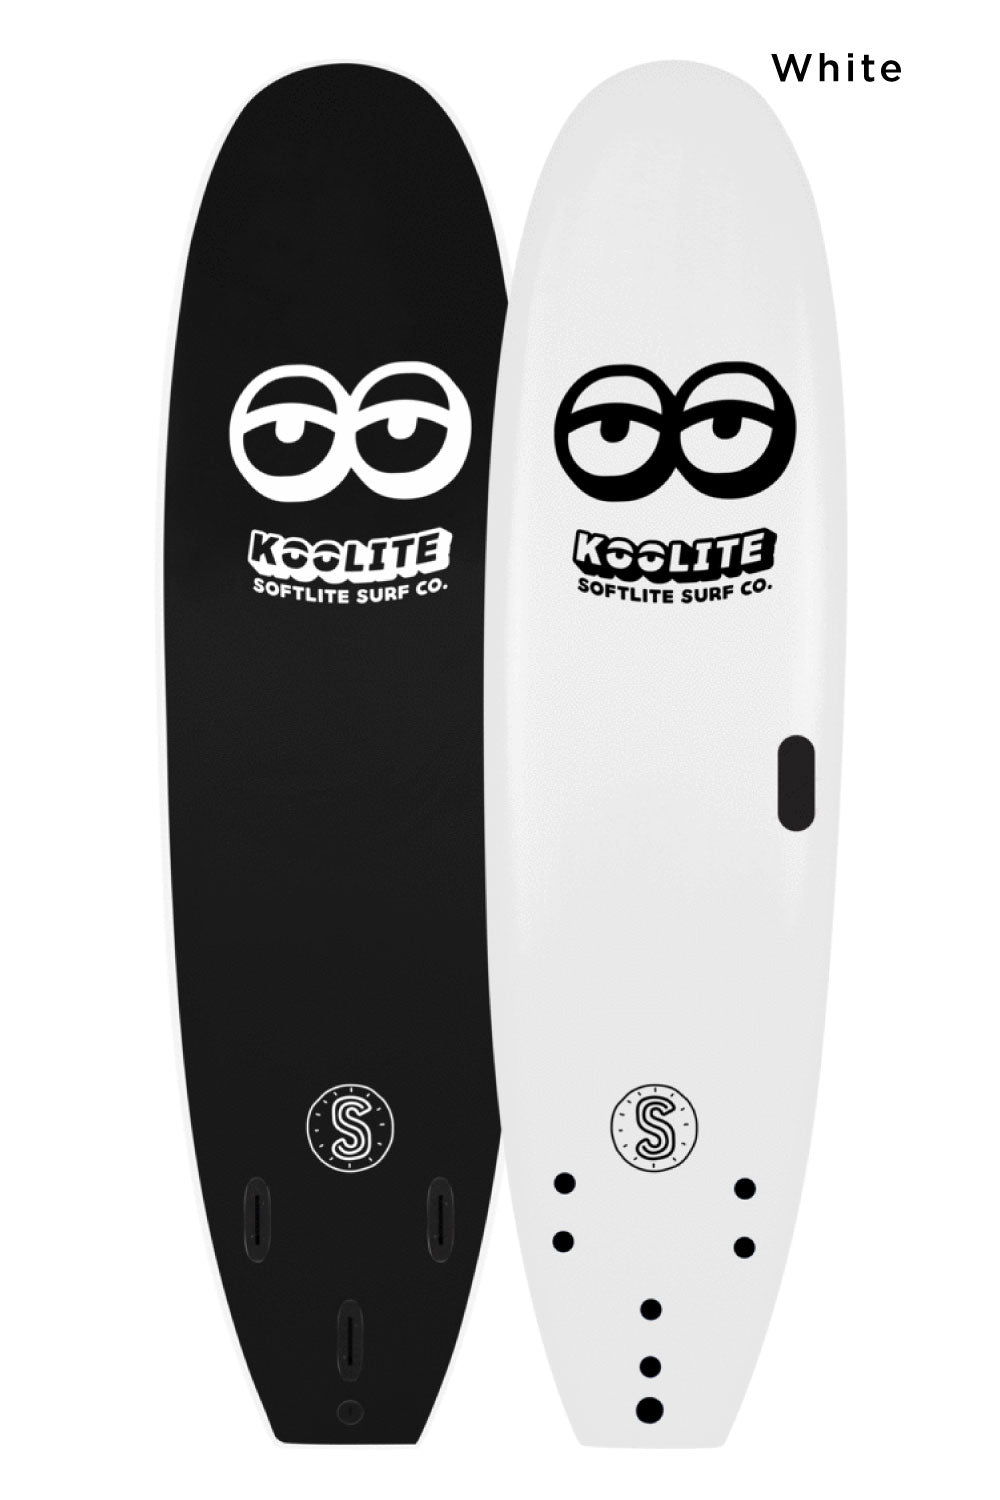 Softlite Koolite 8ft Softboard